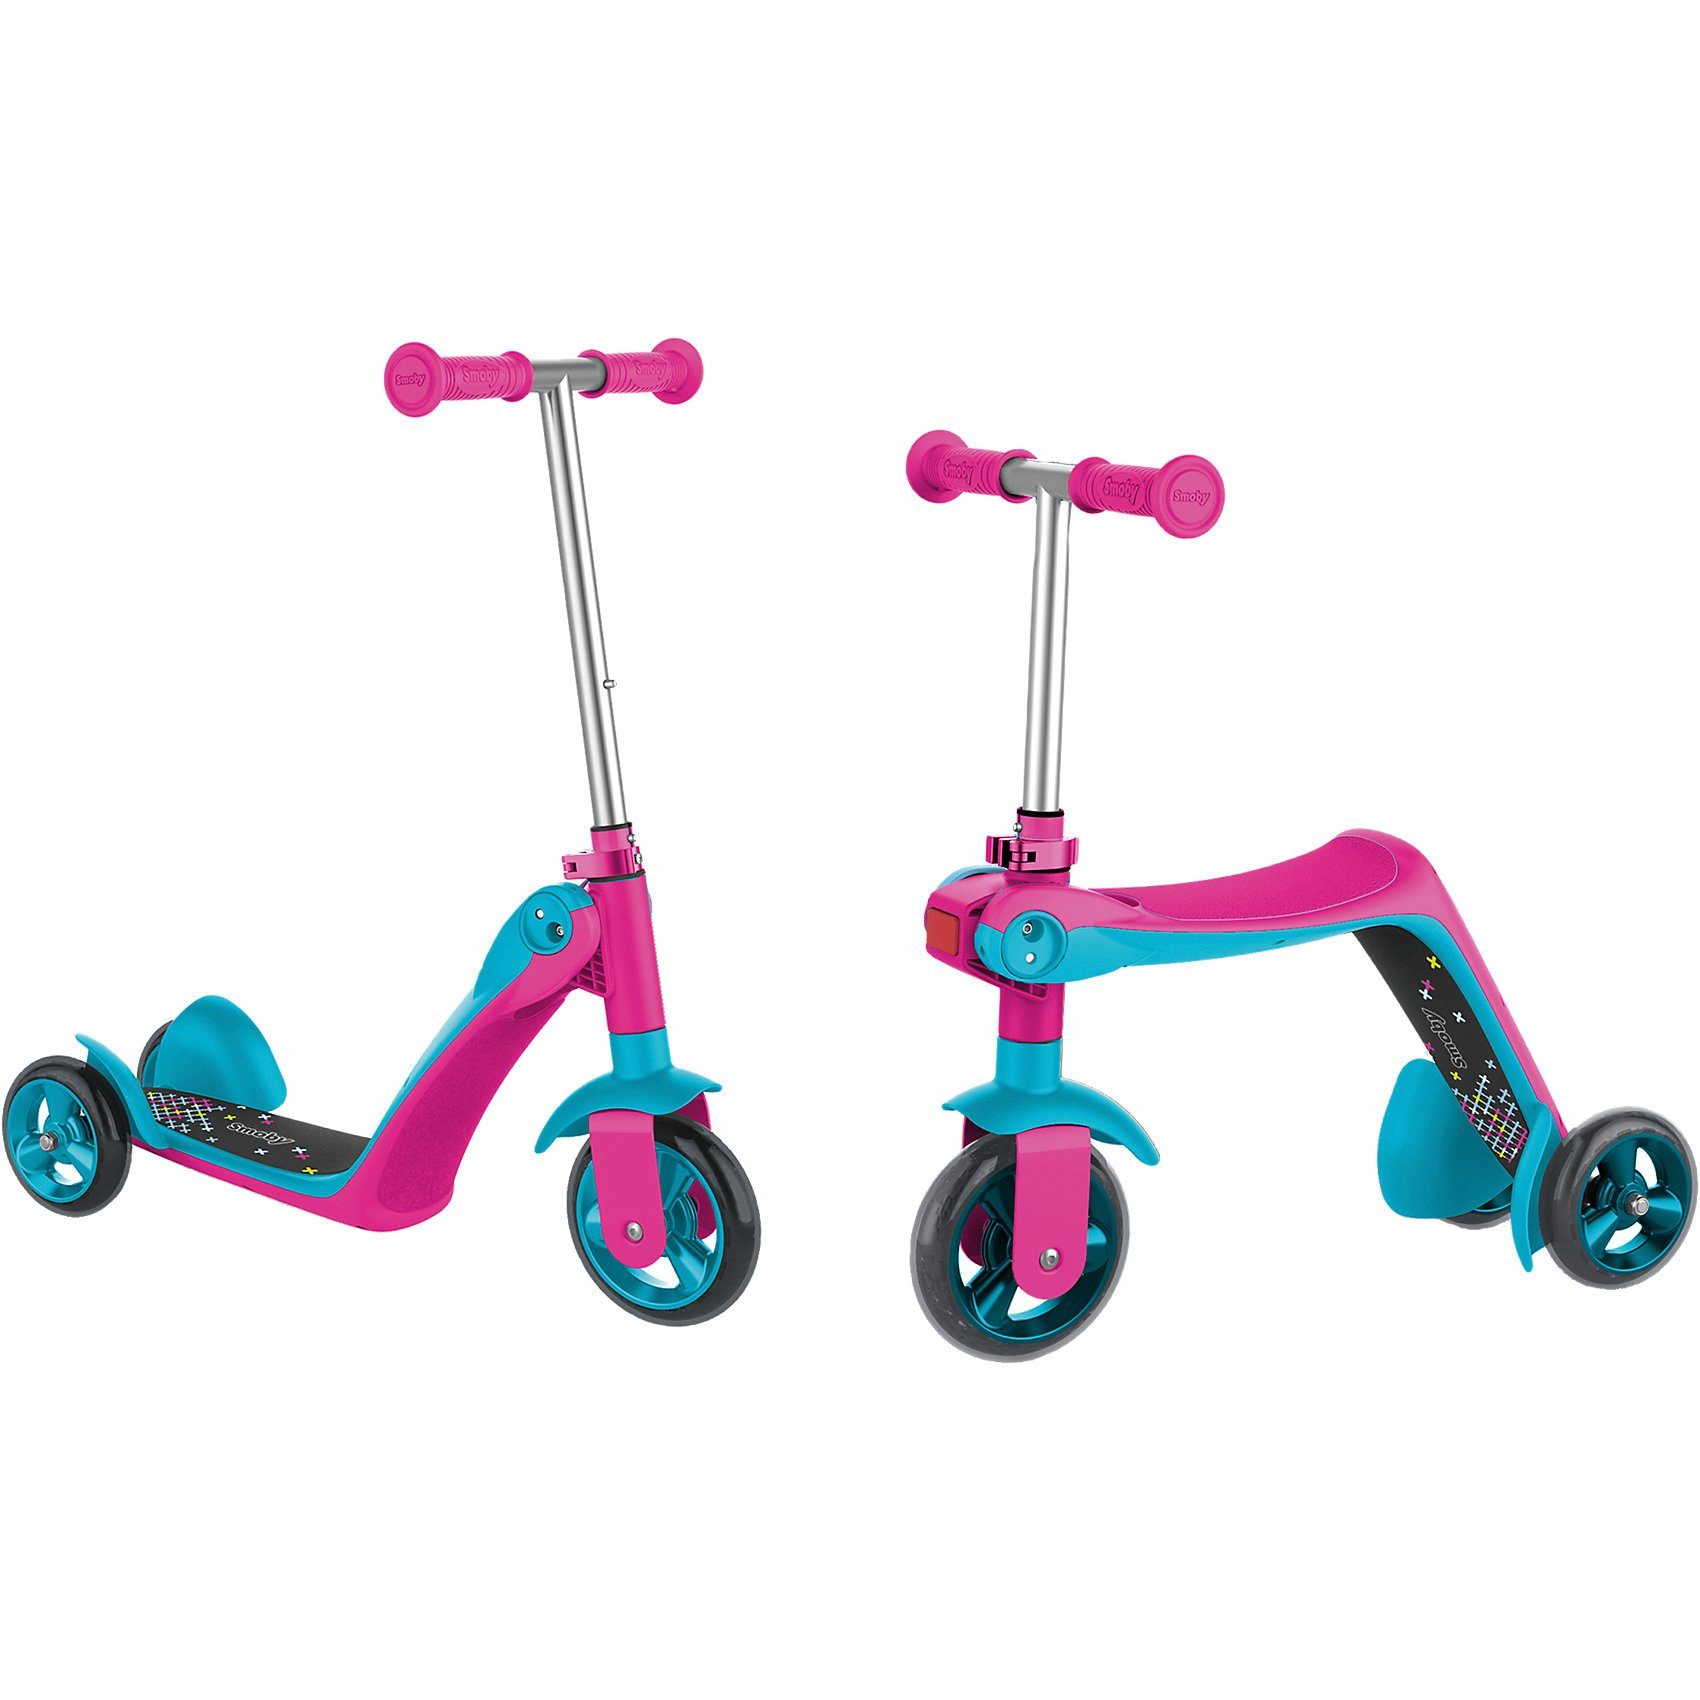 Smoby Scooter Ride 2in1, pink